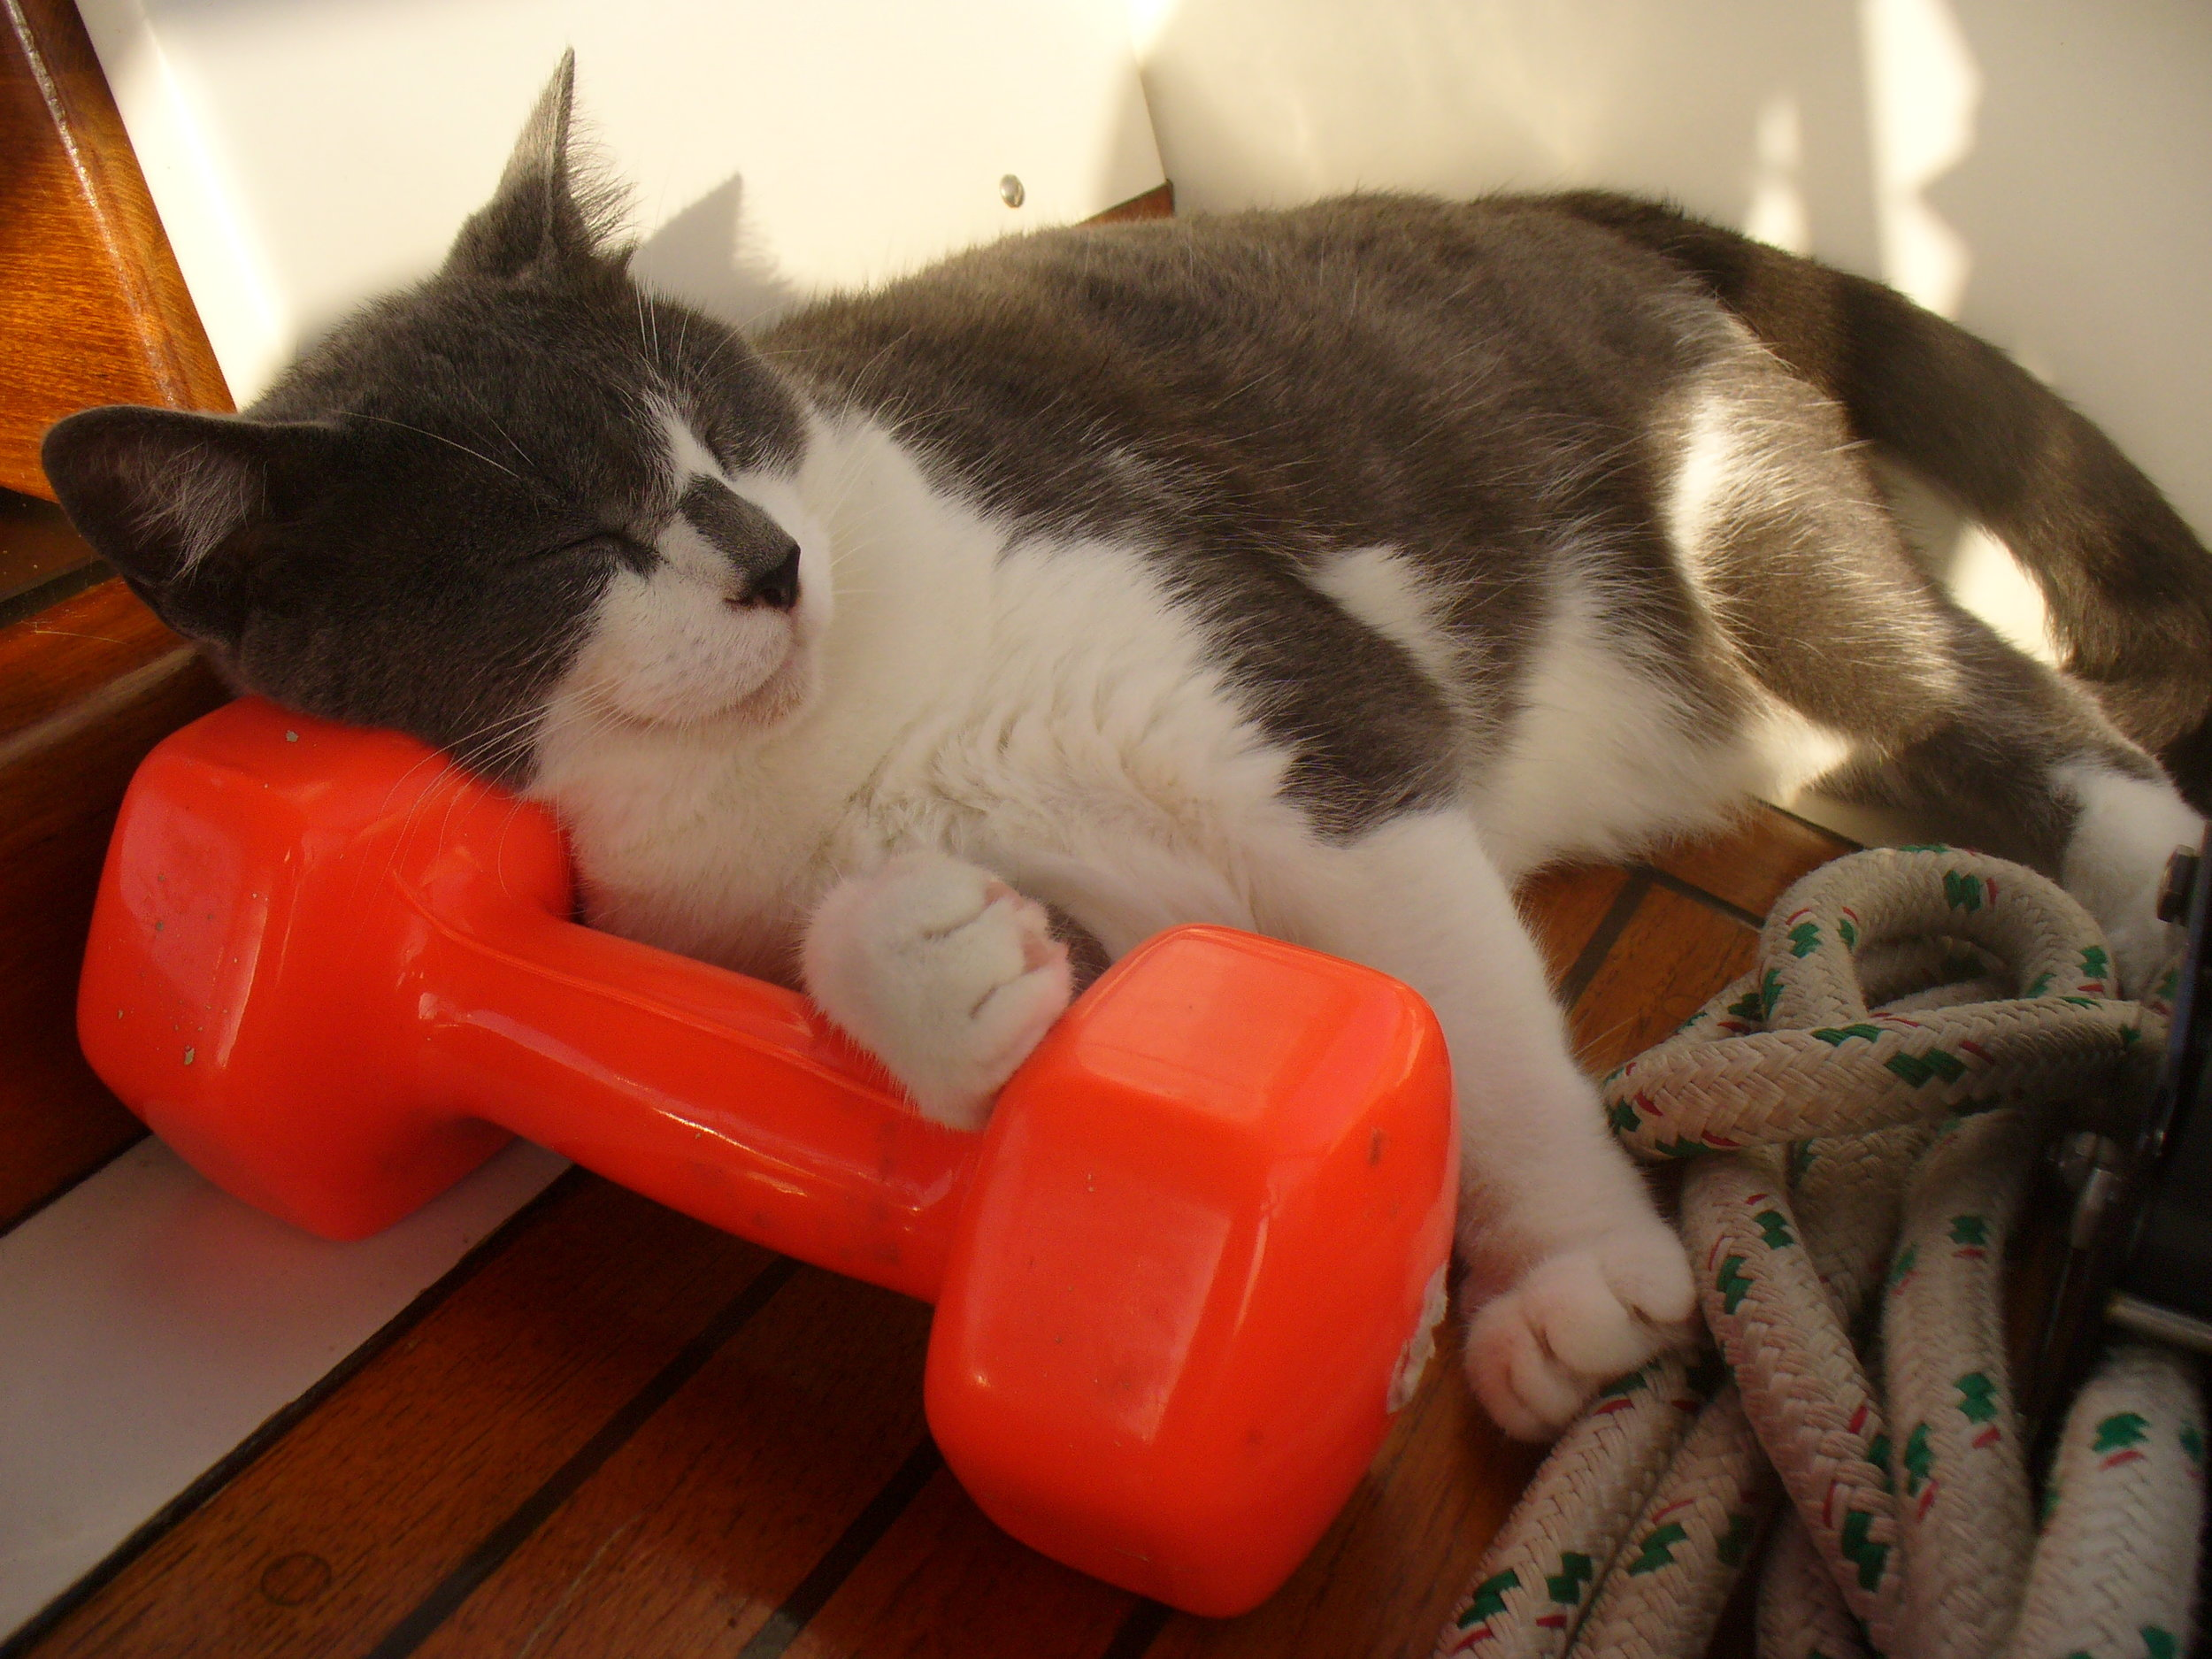 Exercise is highly overrated, but exercise equipment can be useful.  Never miss the opportunity for a nap.